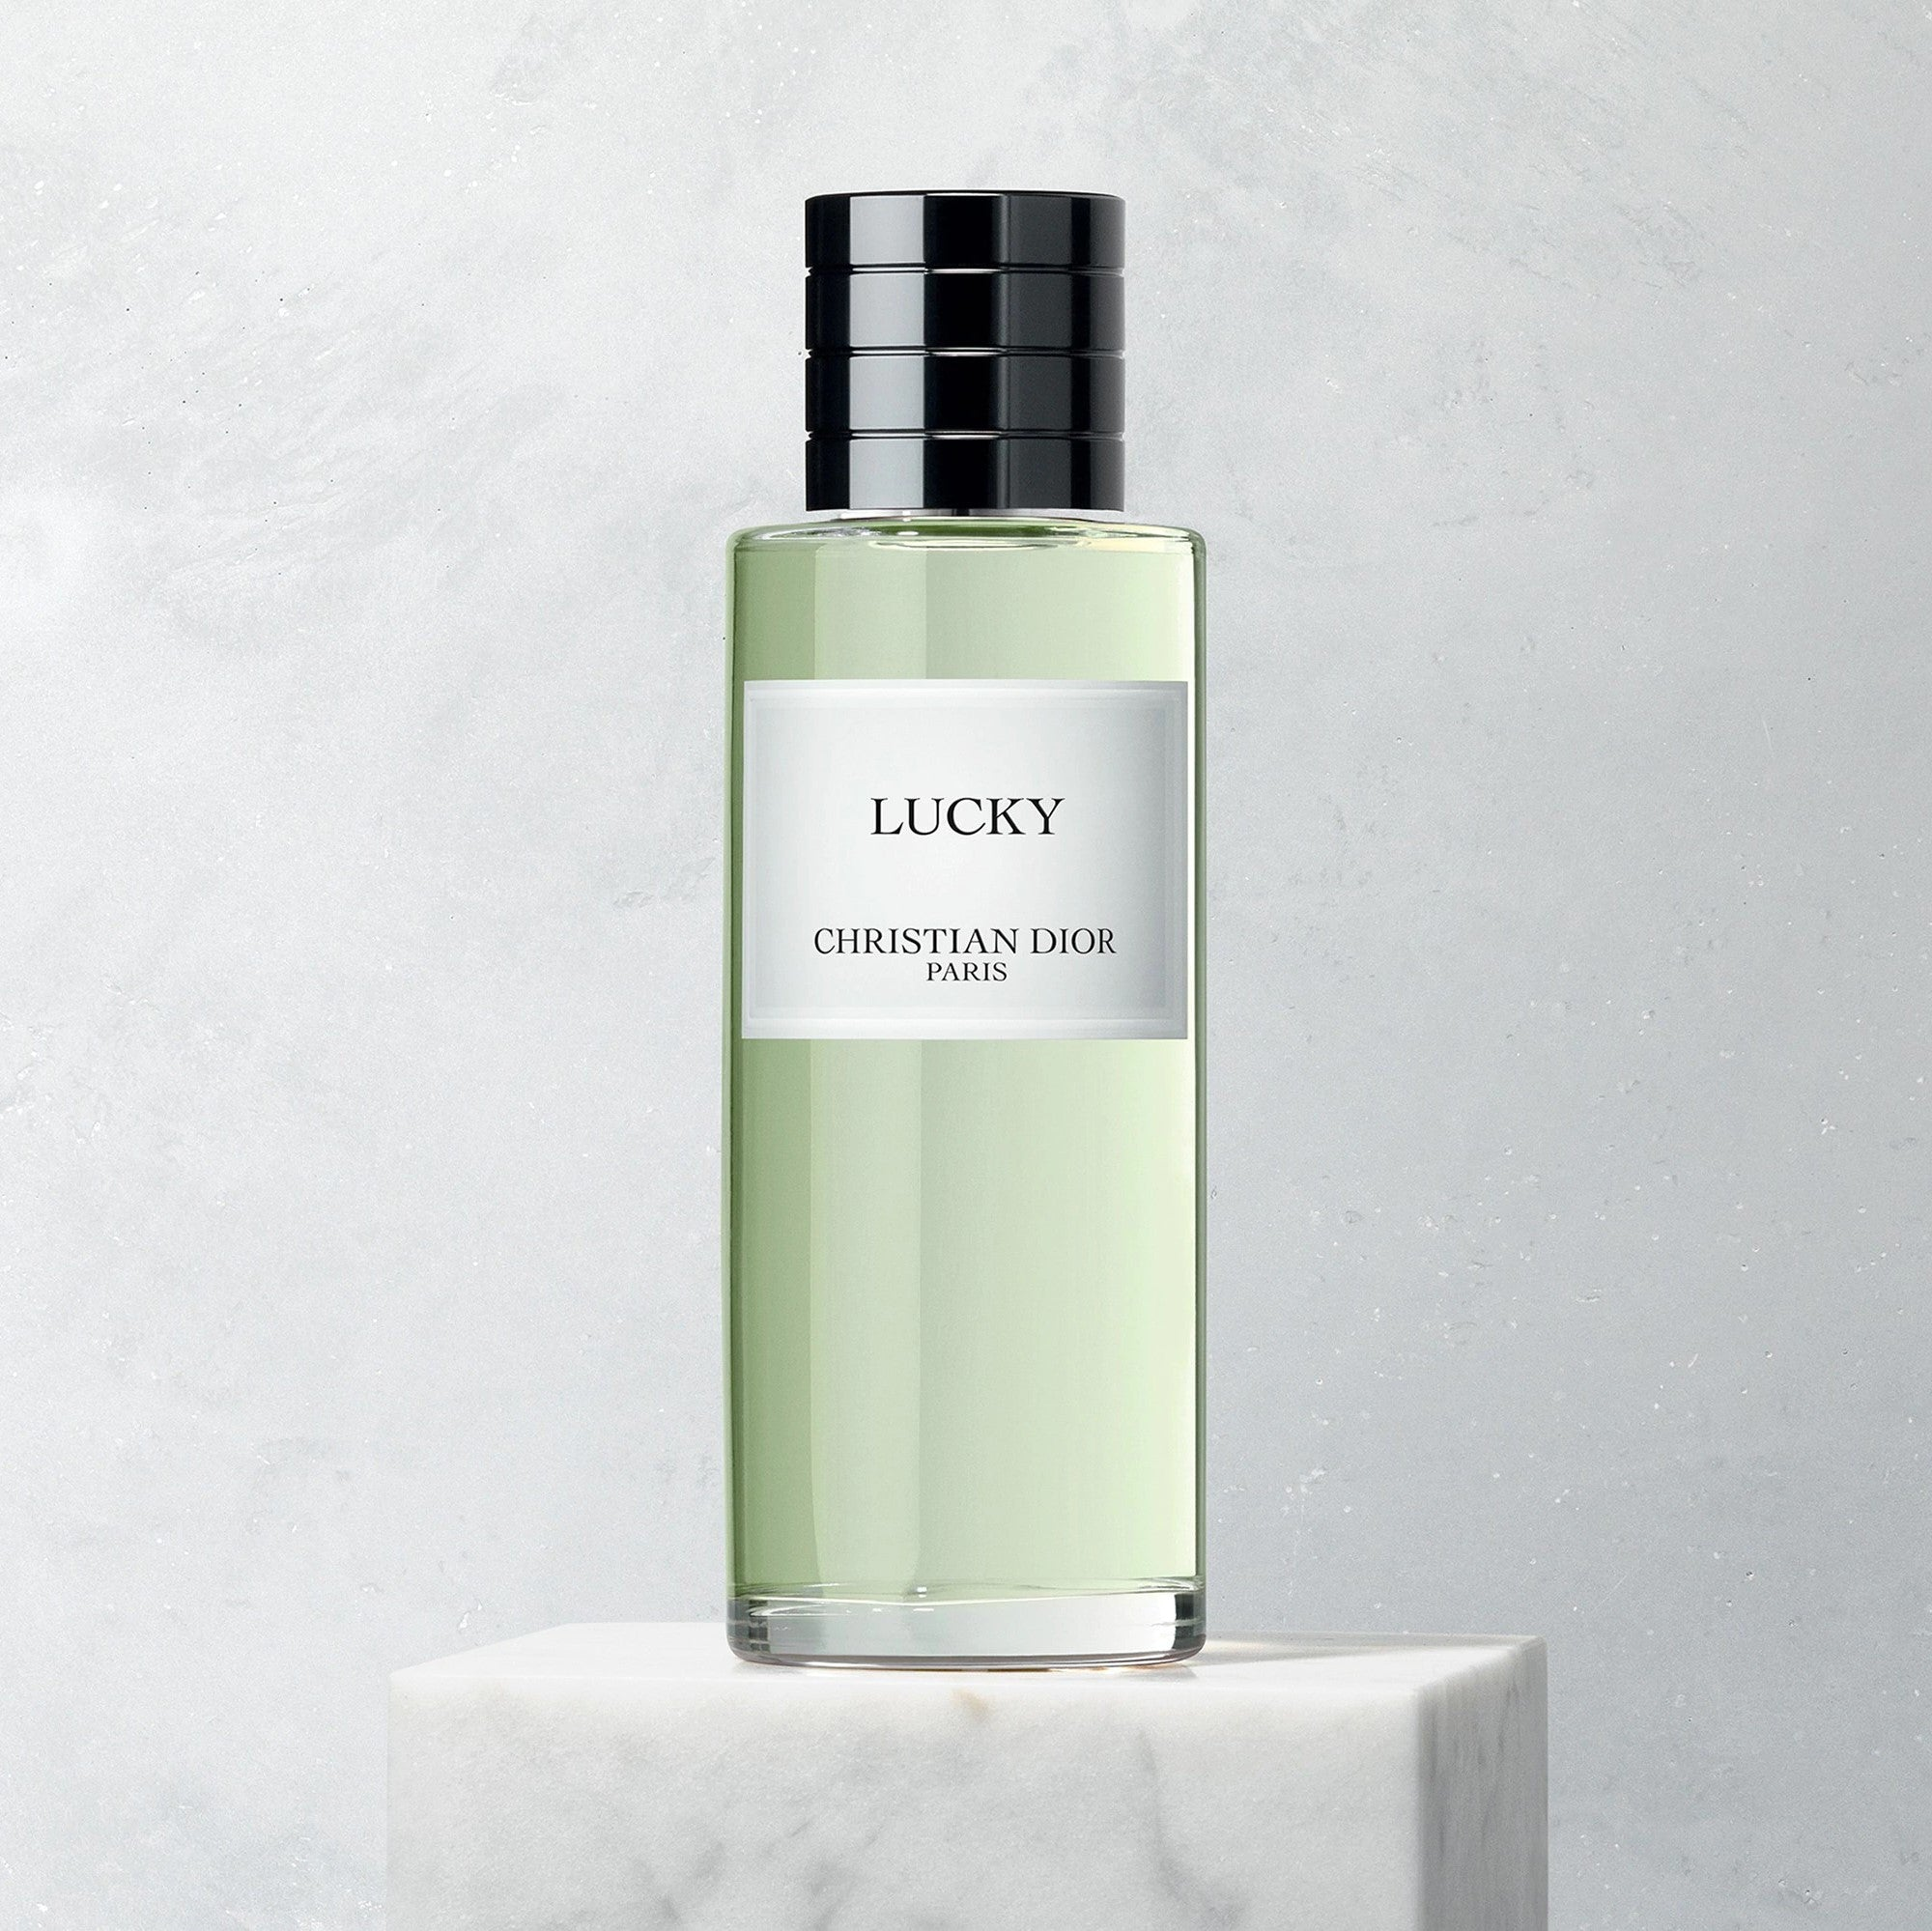 LUCKY | Fragrance